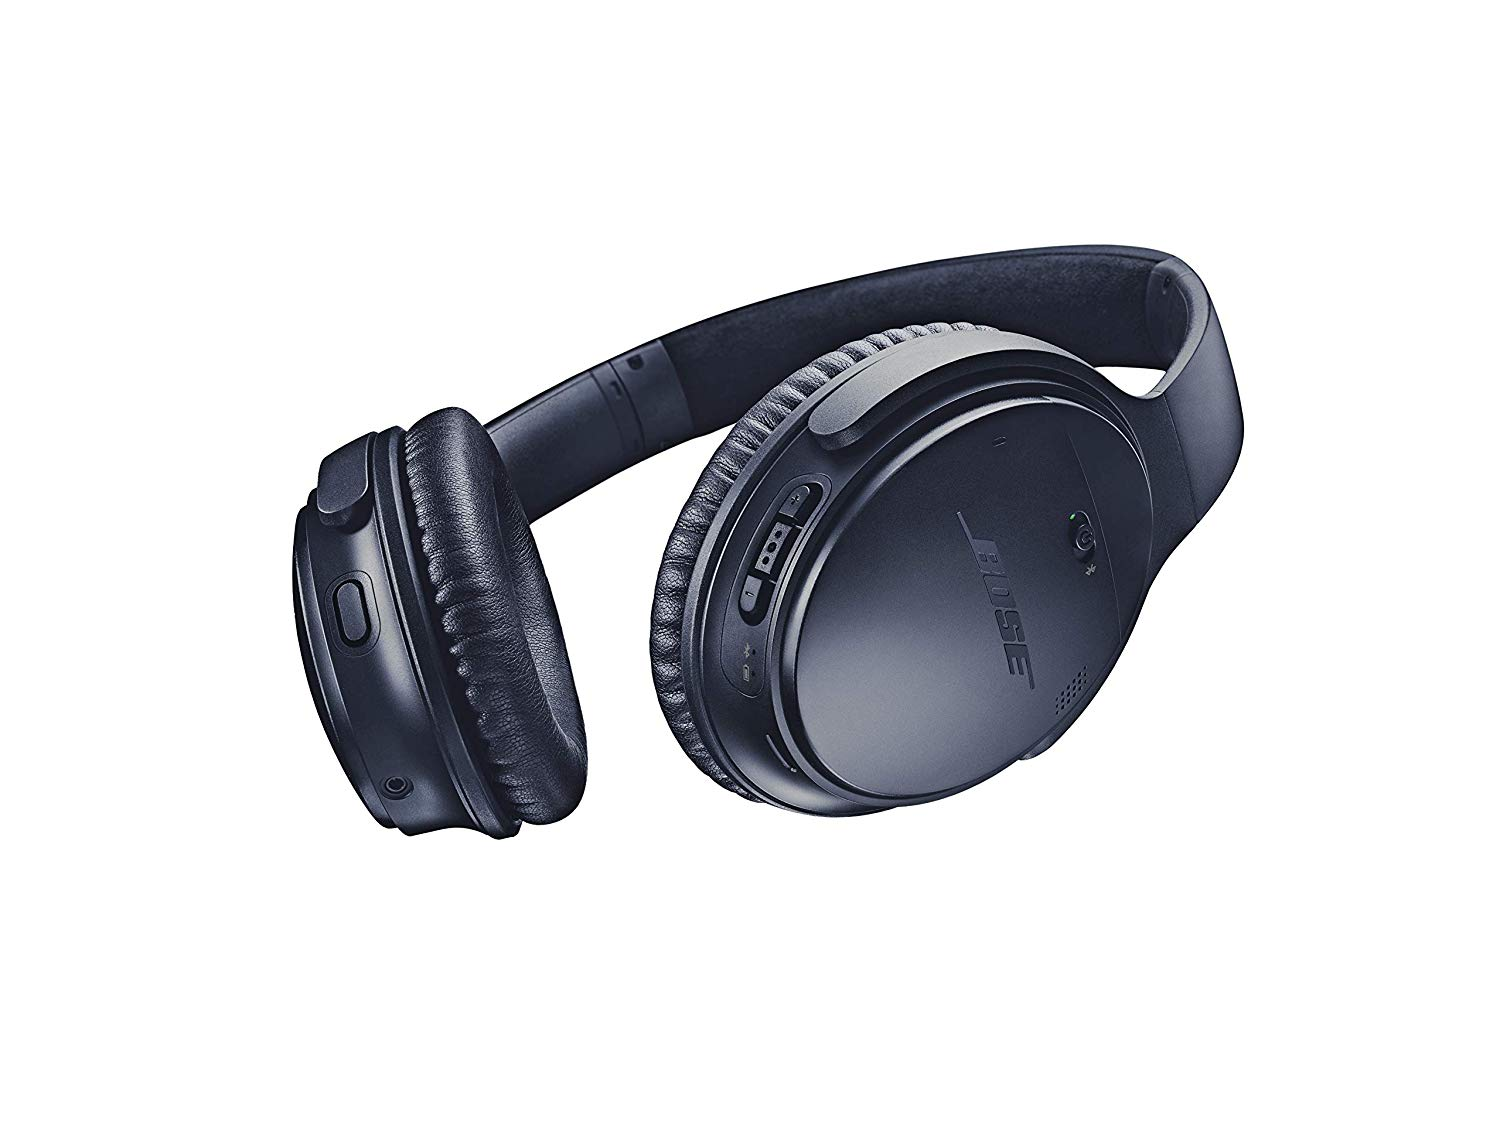 Cheapest Noise Cancelling Headphones In The Black Friday Deals